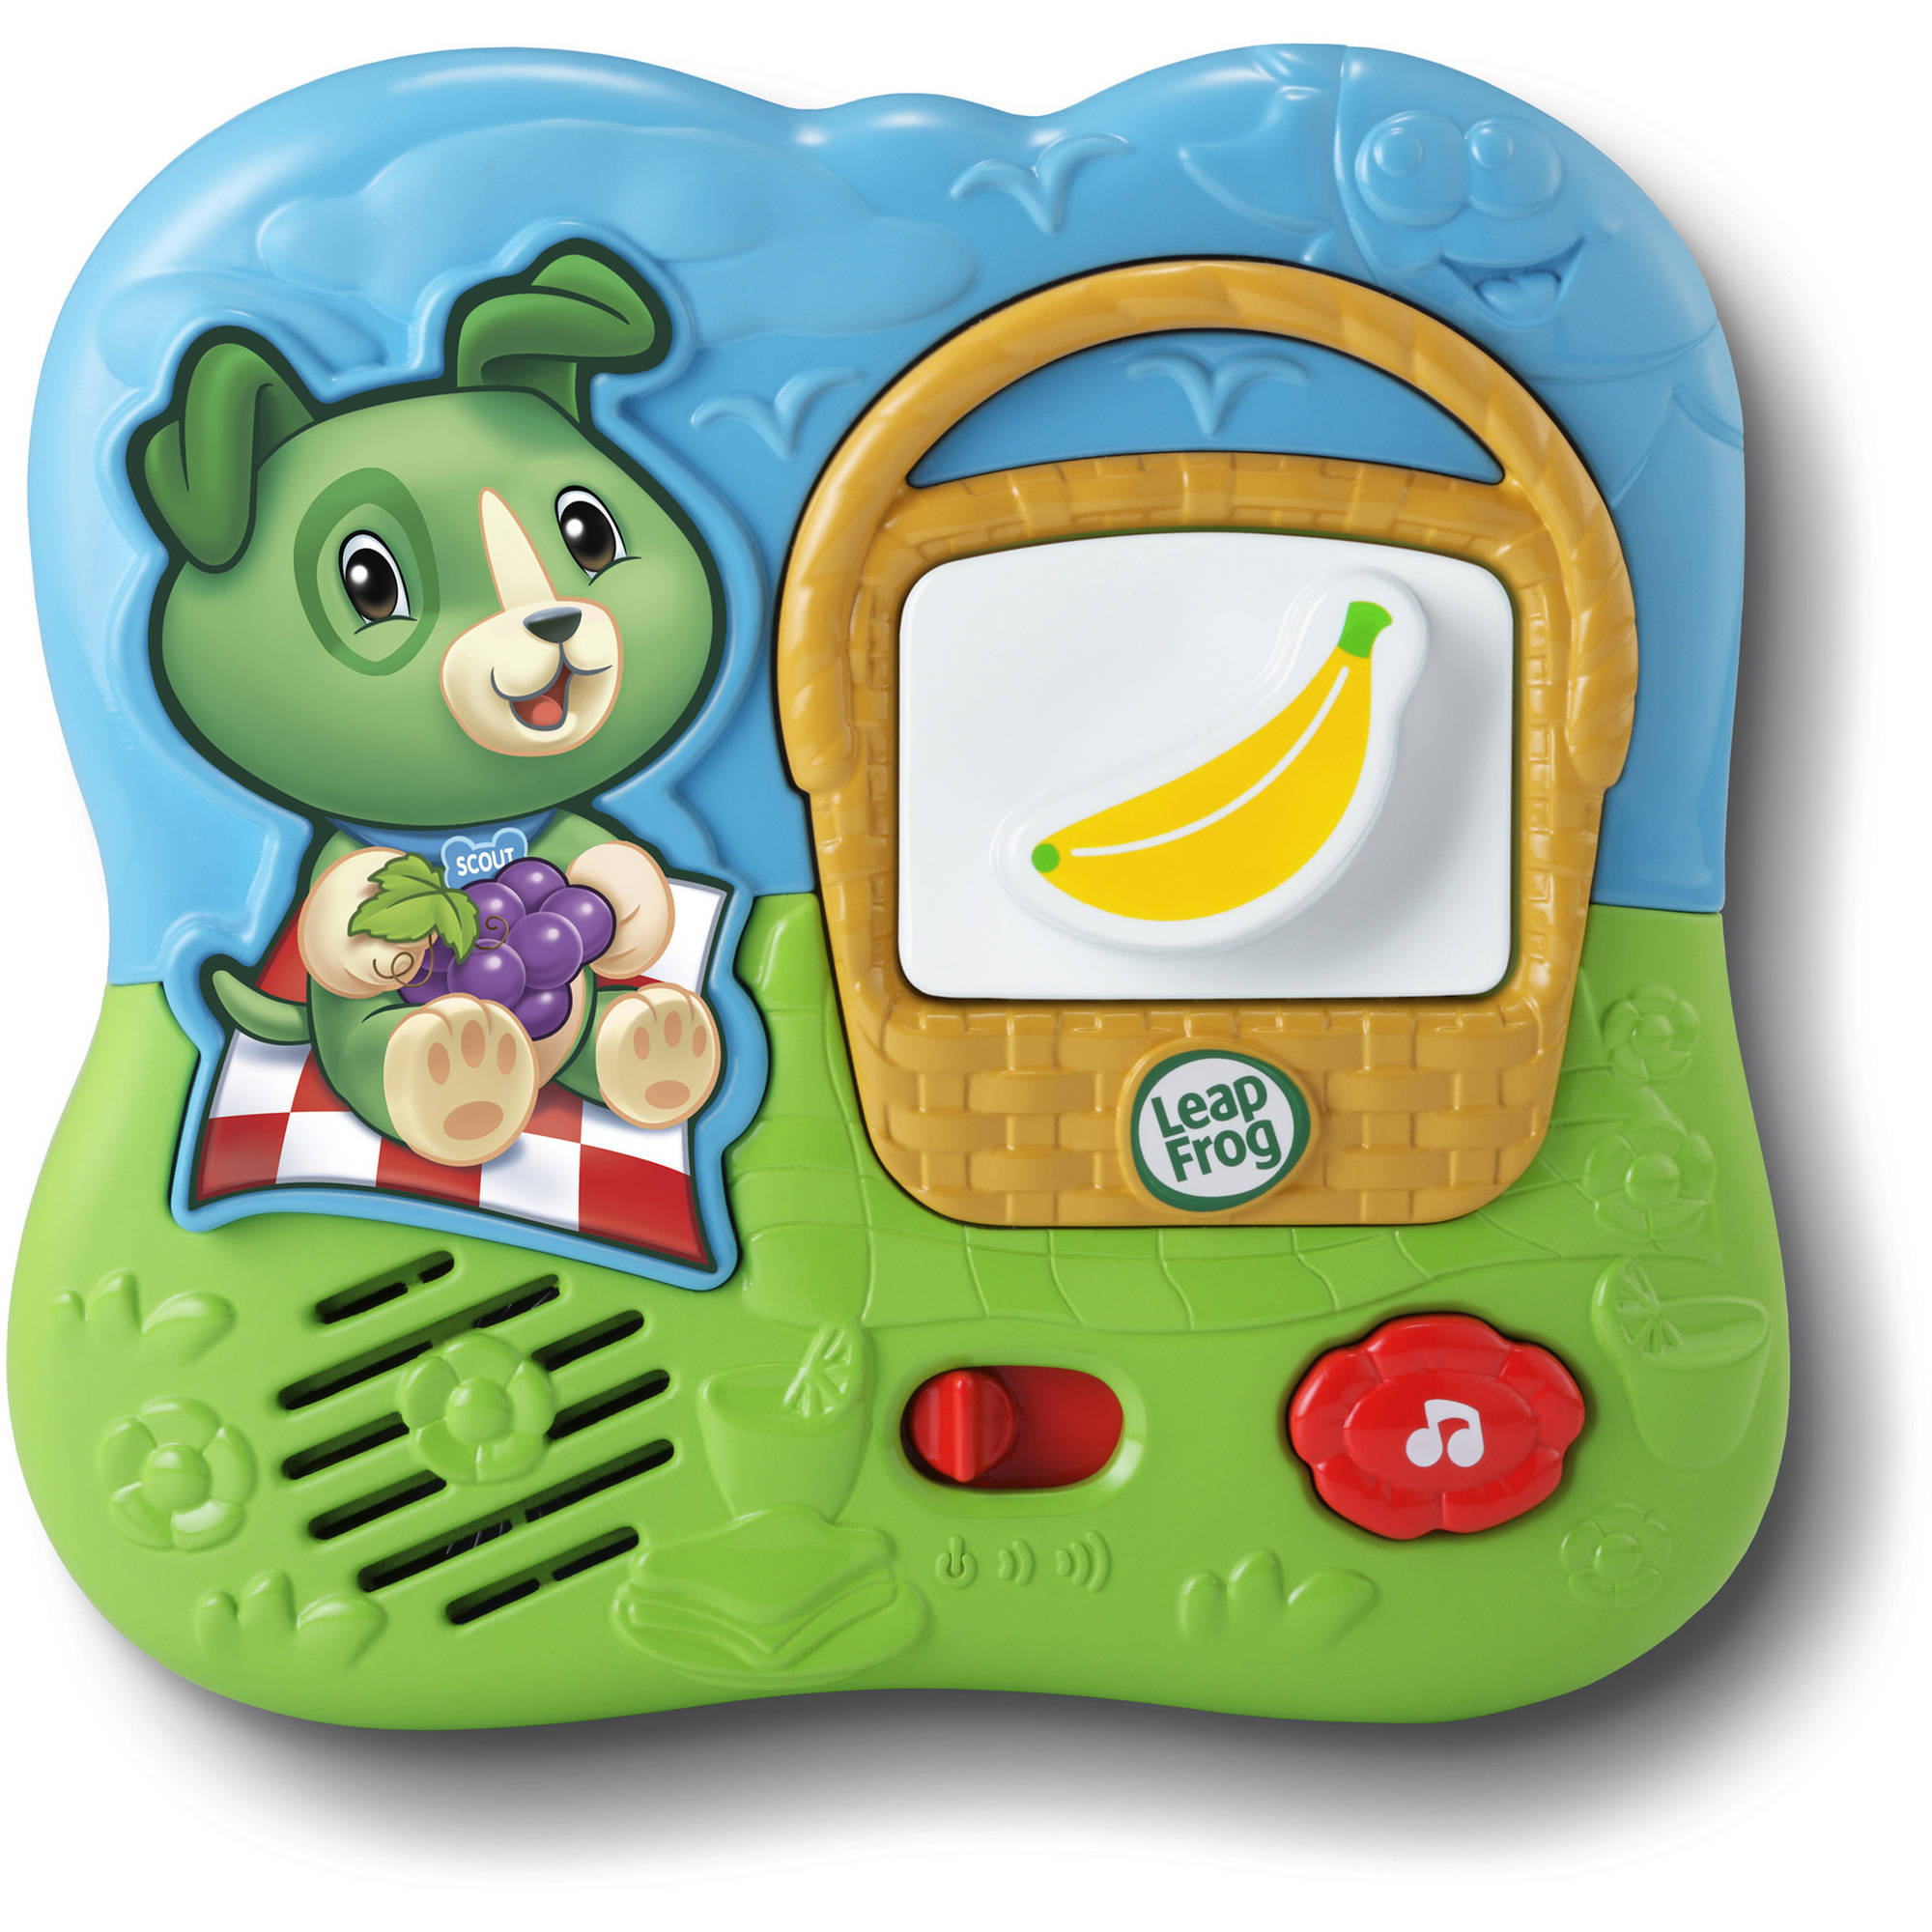 Jan 12, · LeapFrog epic review The LeapFrog Epic has fantastic games and apps for kids, but its hardware lags Simon Hill/Digital Trends. Amazon and Walmart both have it on sale .